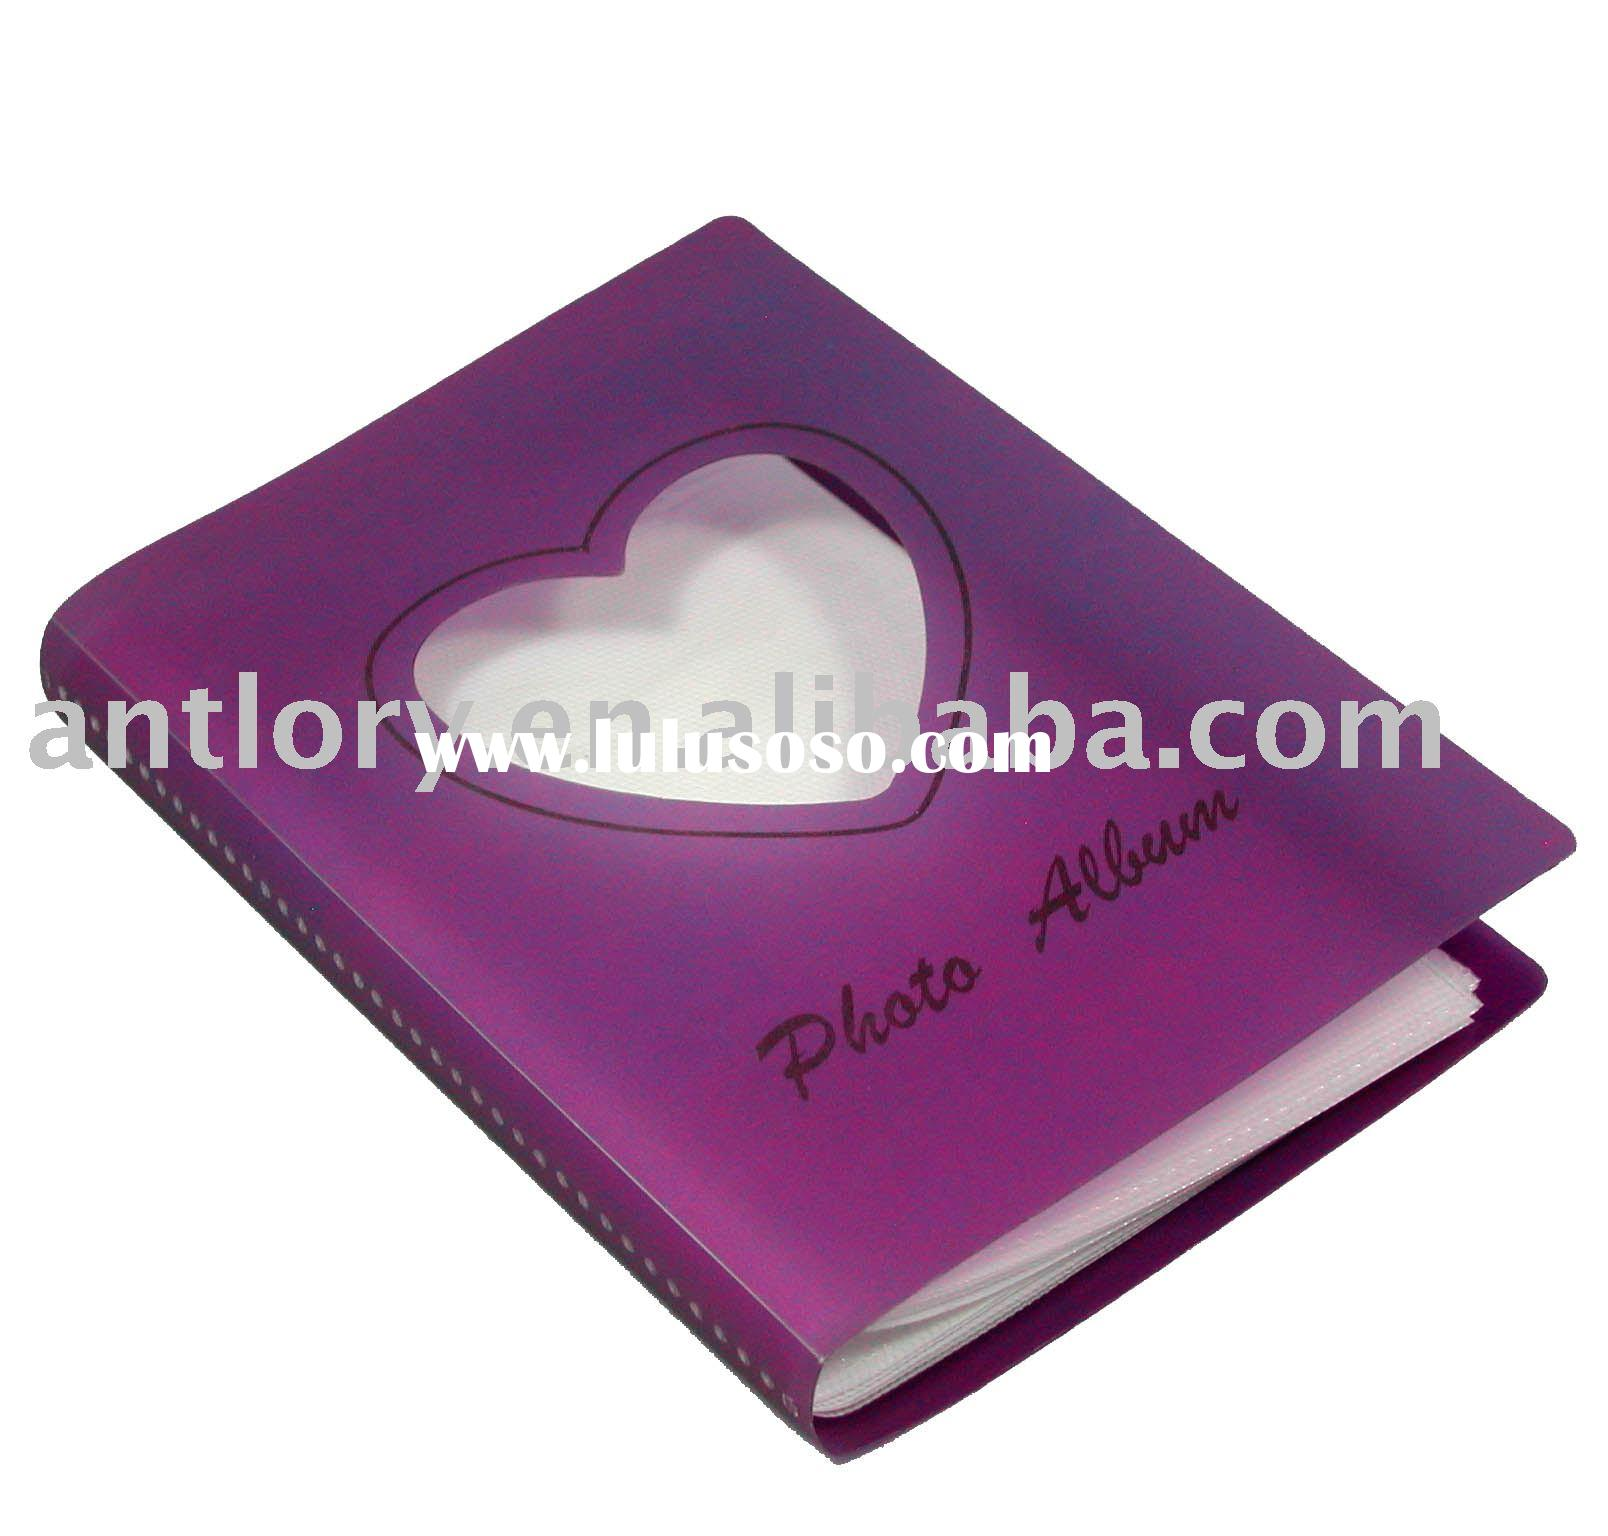 China professional PP photo album manufacturer